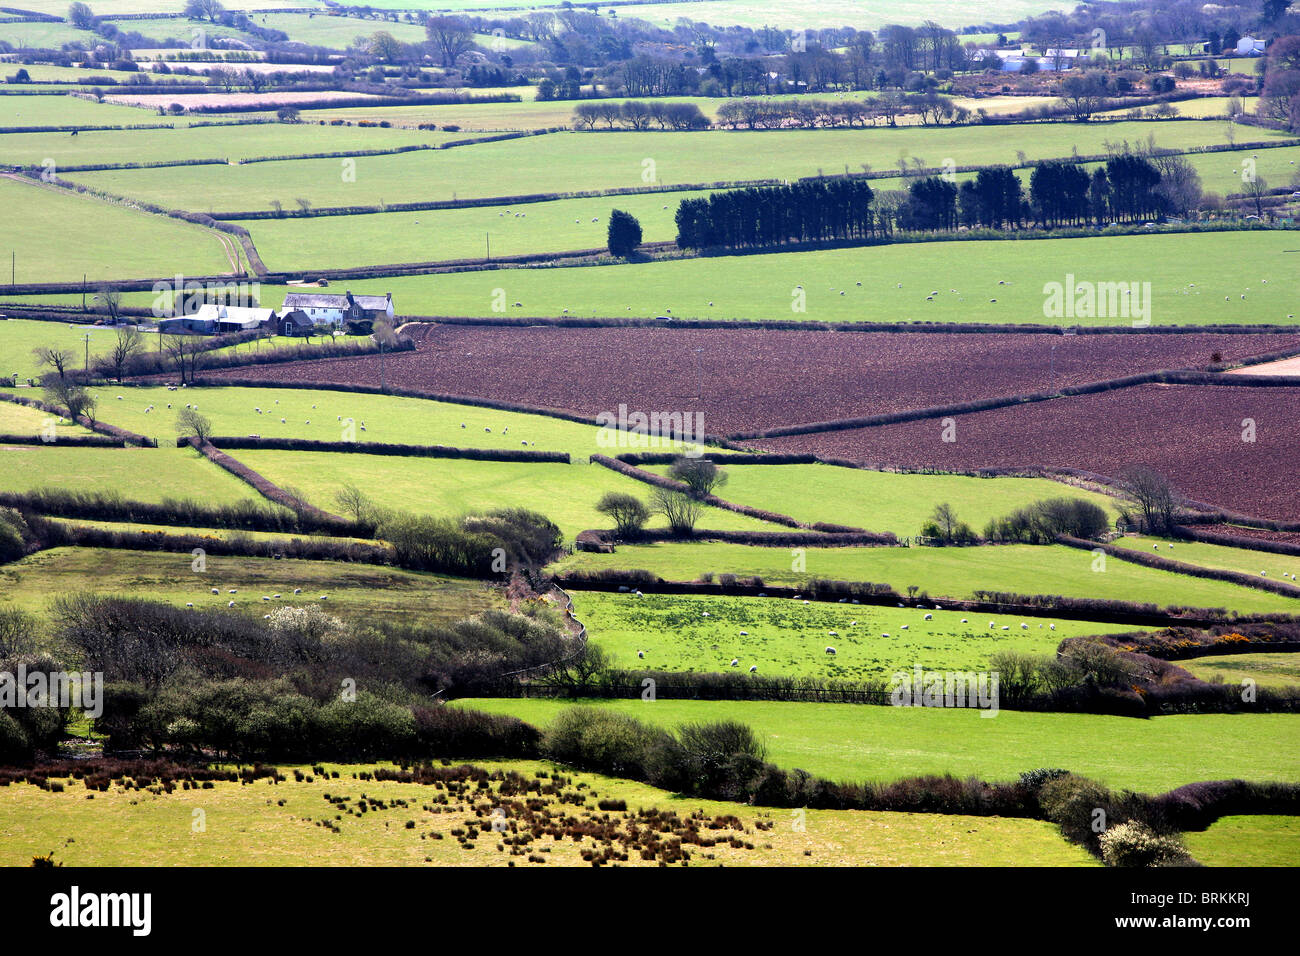 The View South from Llanmadoc Hill North Gower Peninsula City and County of Swansea Wales UK - Stock Image